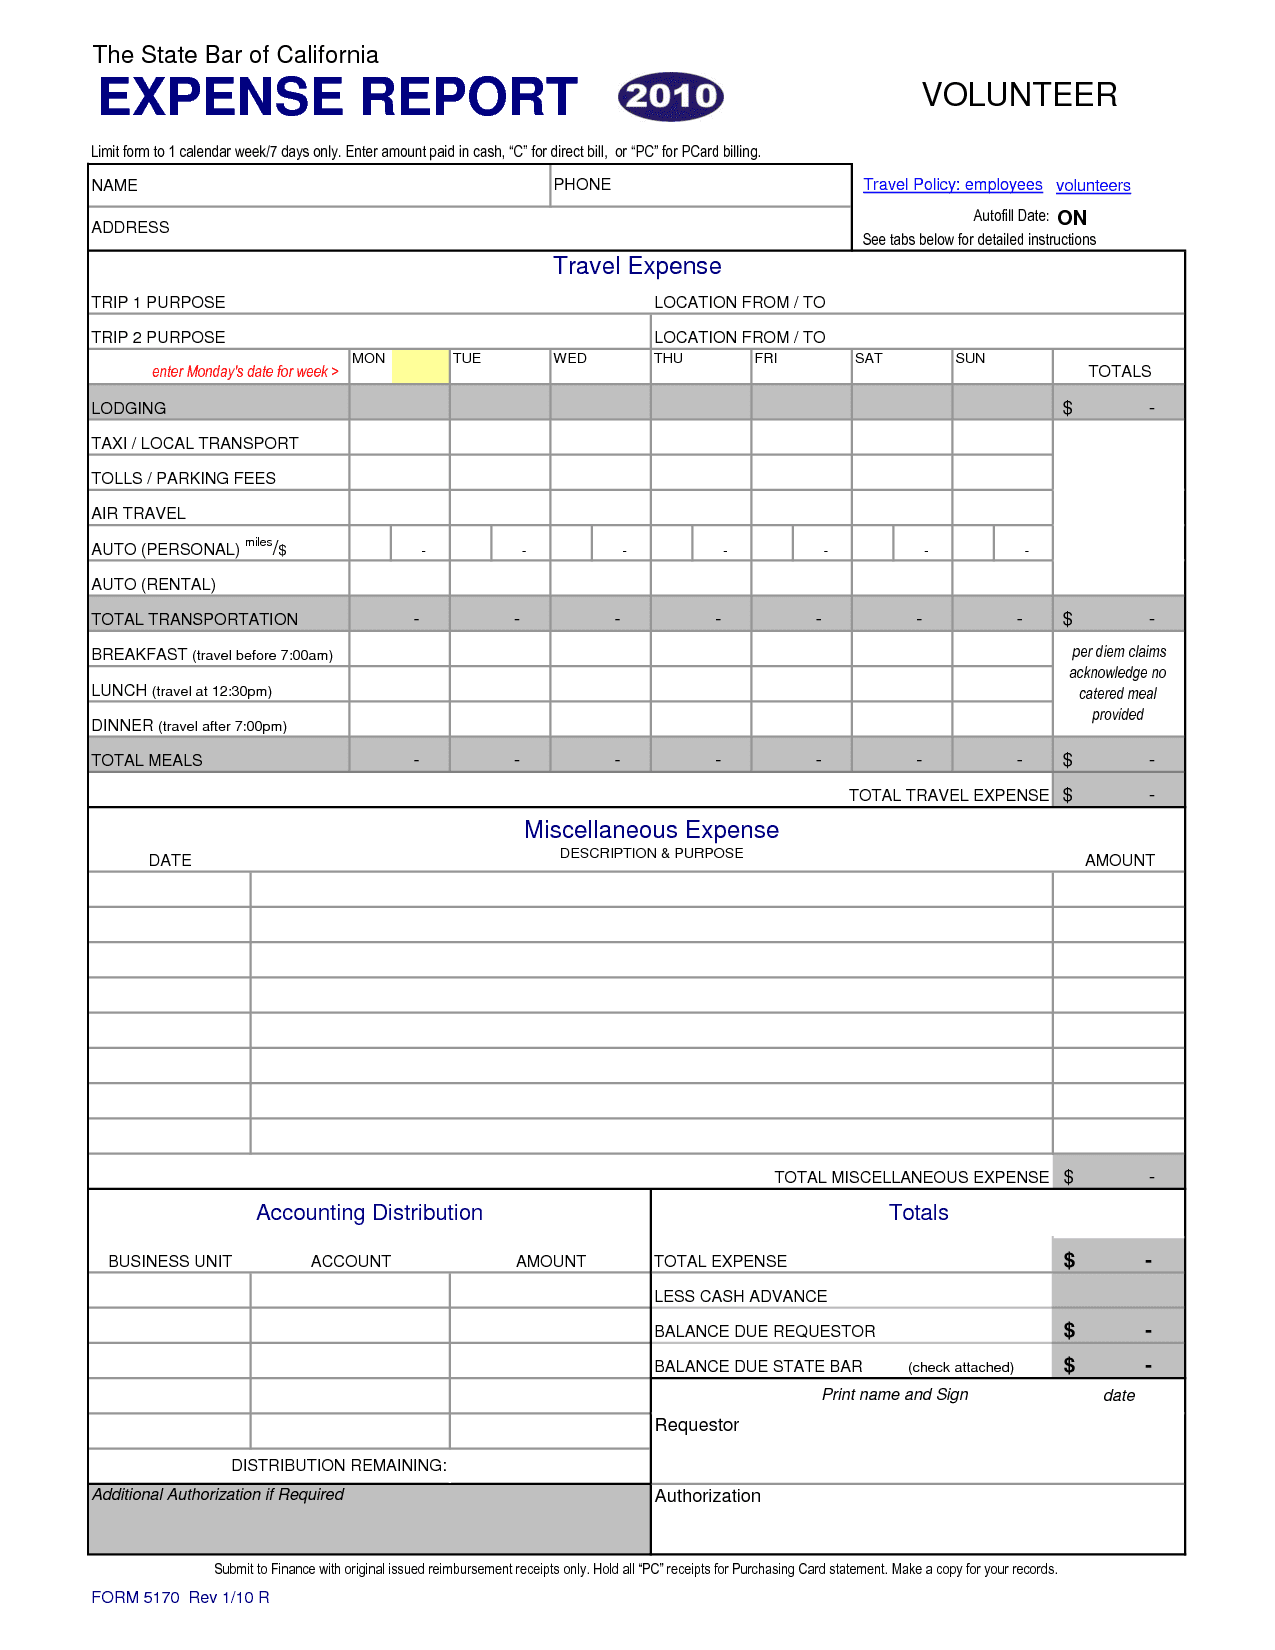 Expense Report Template Excel 2010 And Travel And Business Expense Report